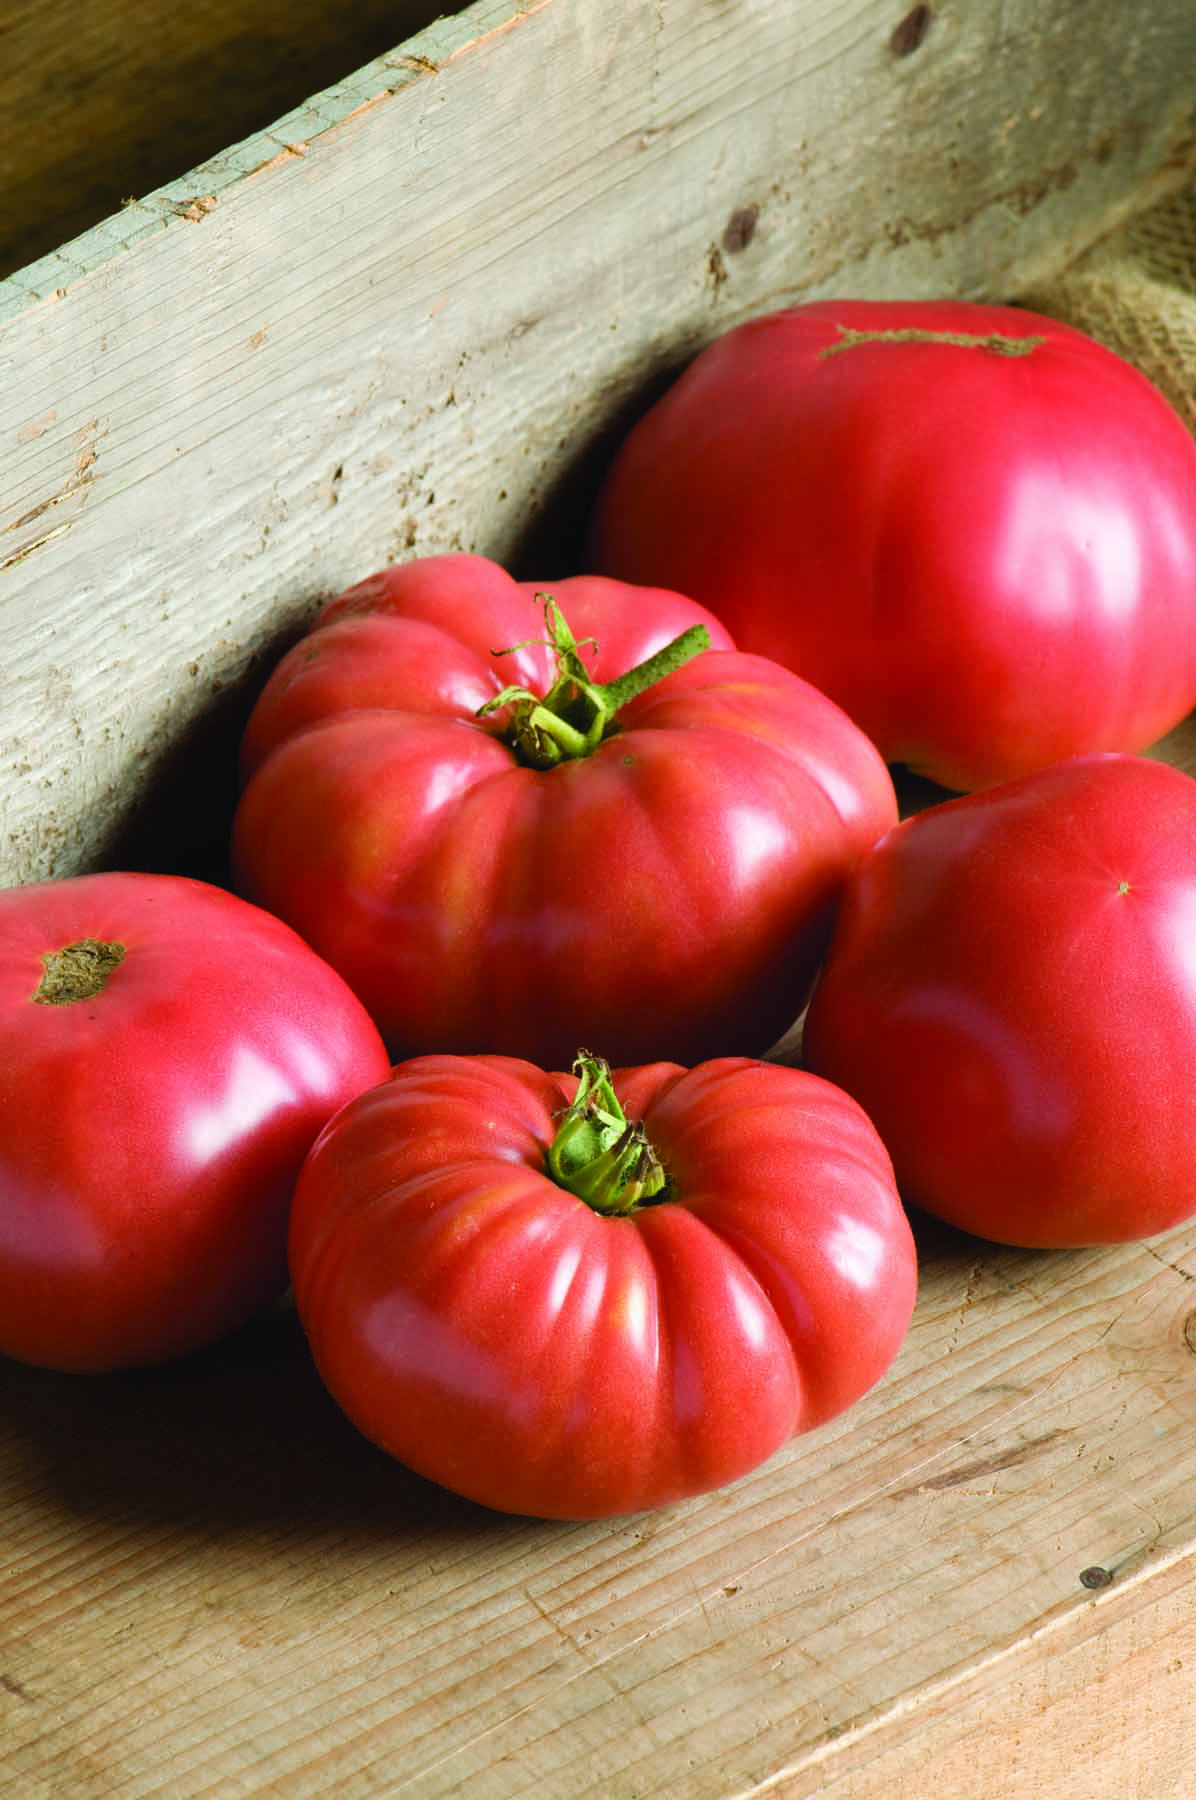 Stock photo of tomatoes.